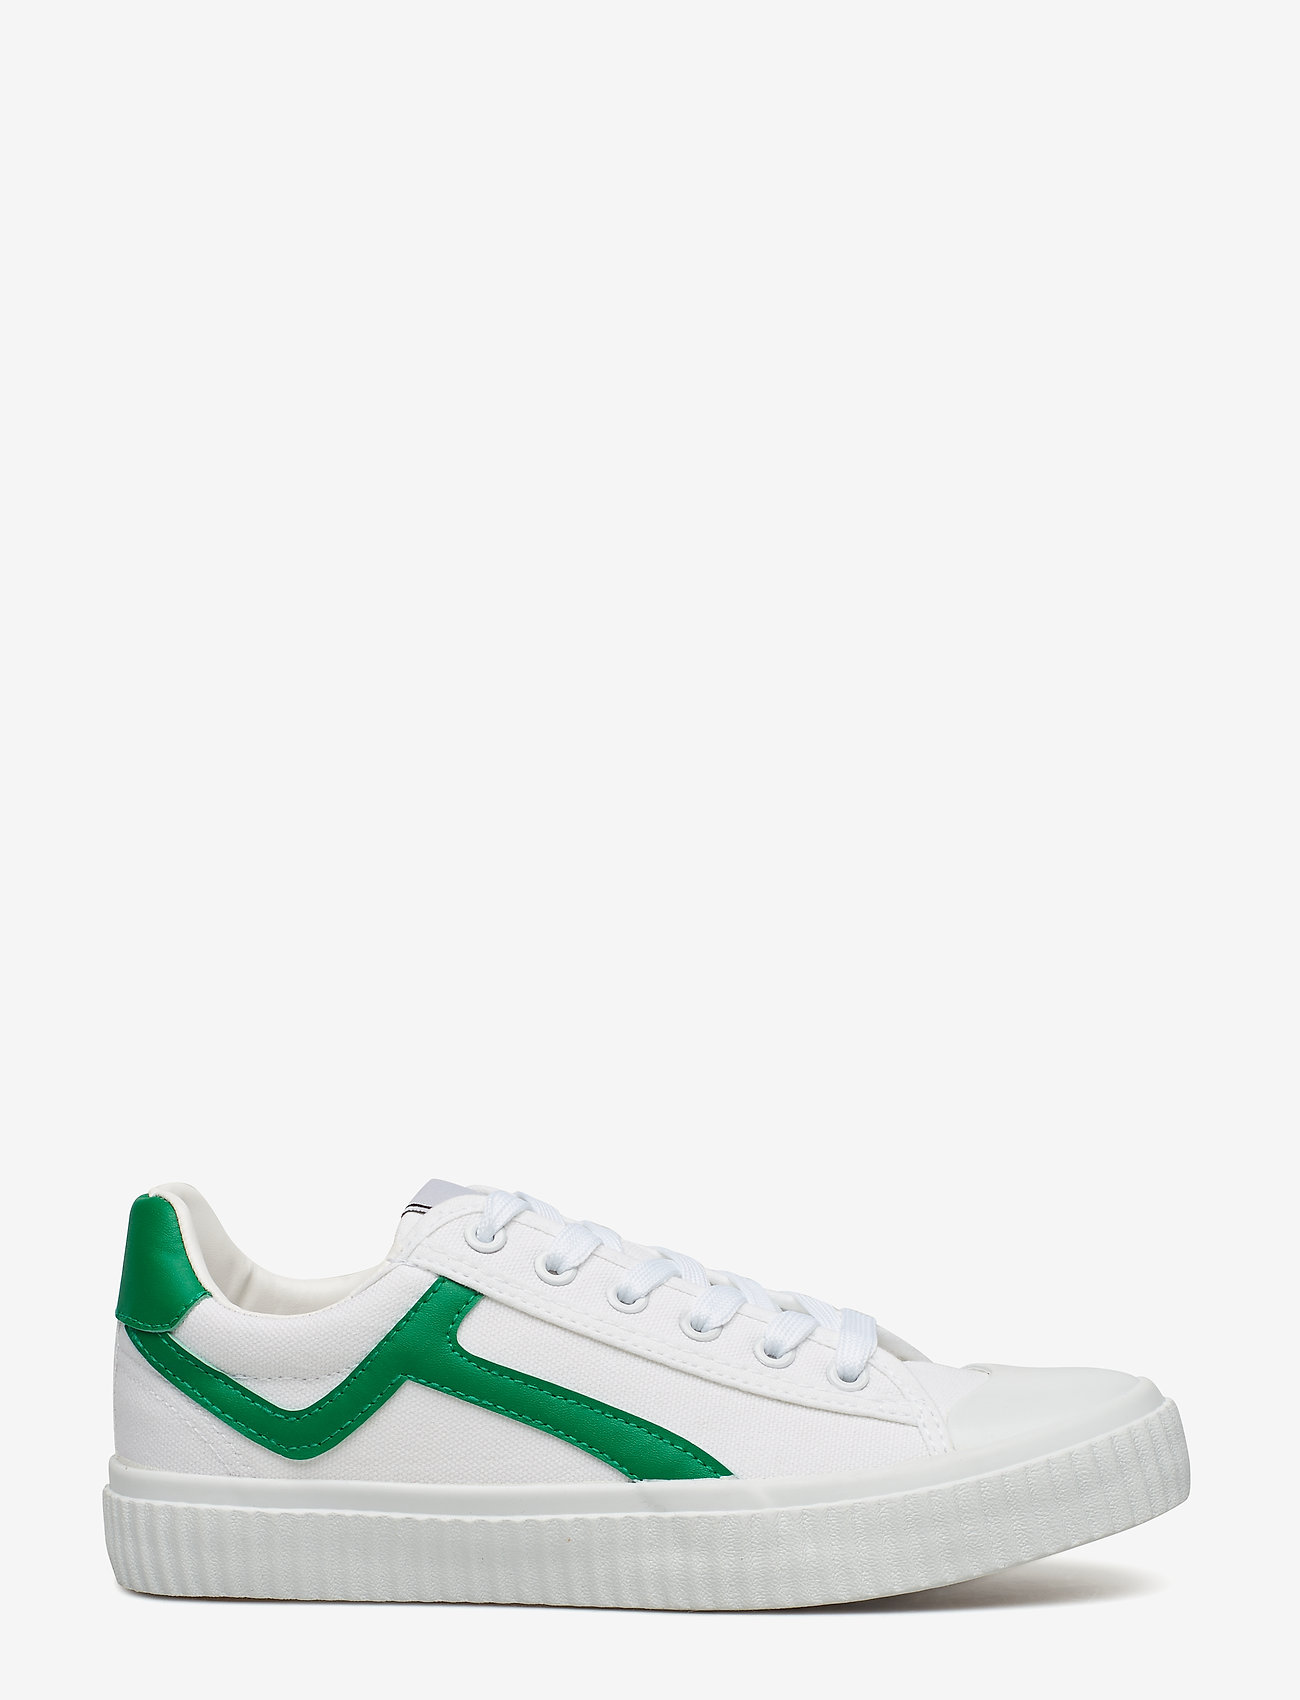 Selected Femme - SLFERICA CANVAS TRAINER B - lave sneakers - gumdrop green - 1